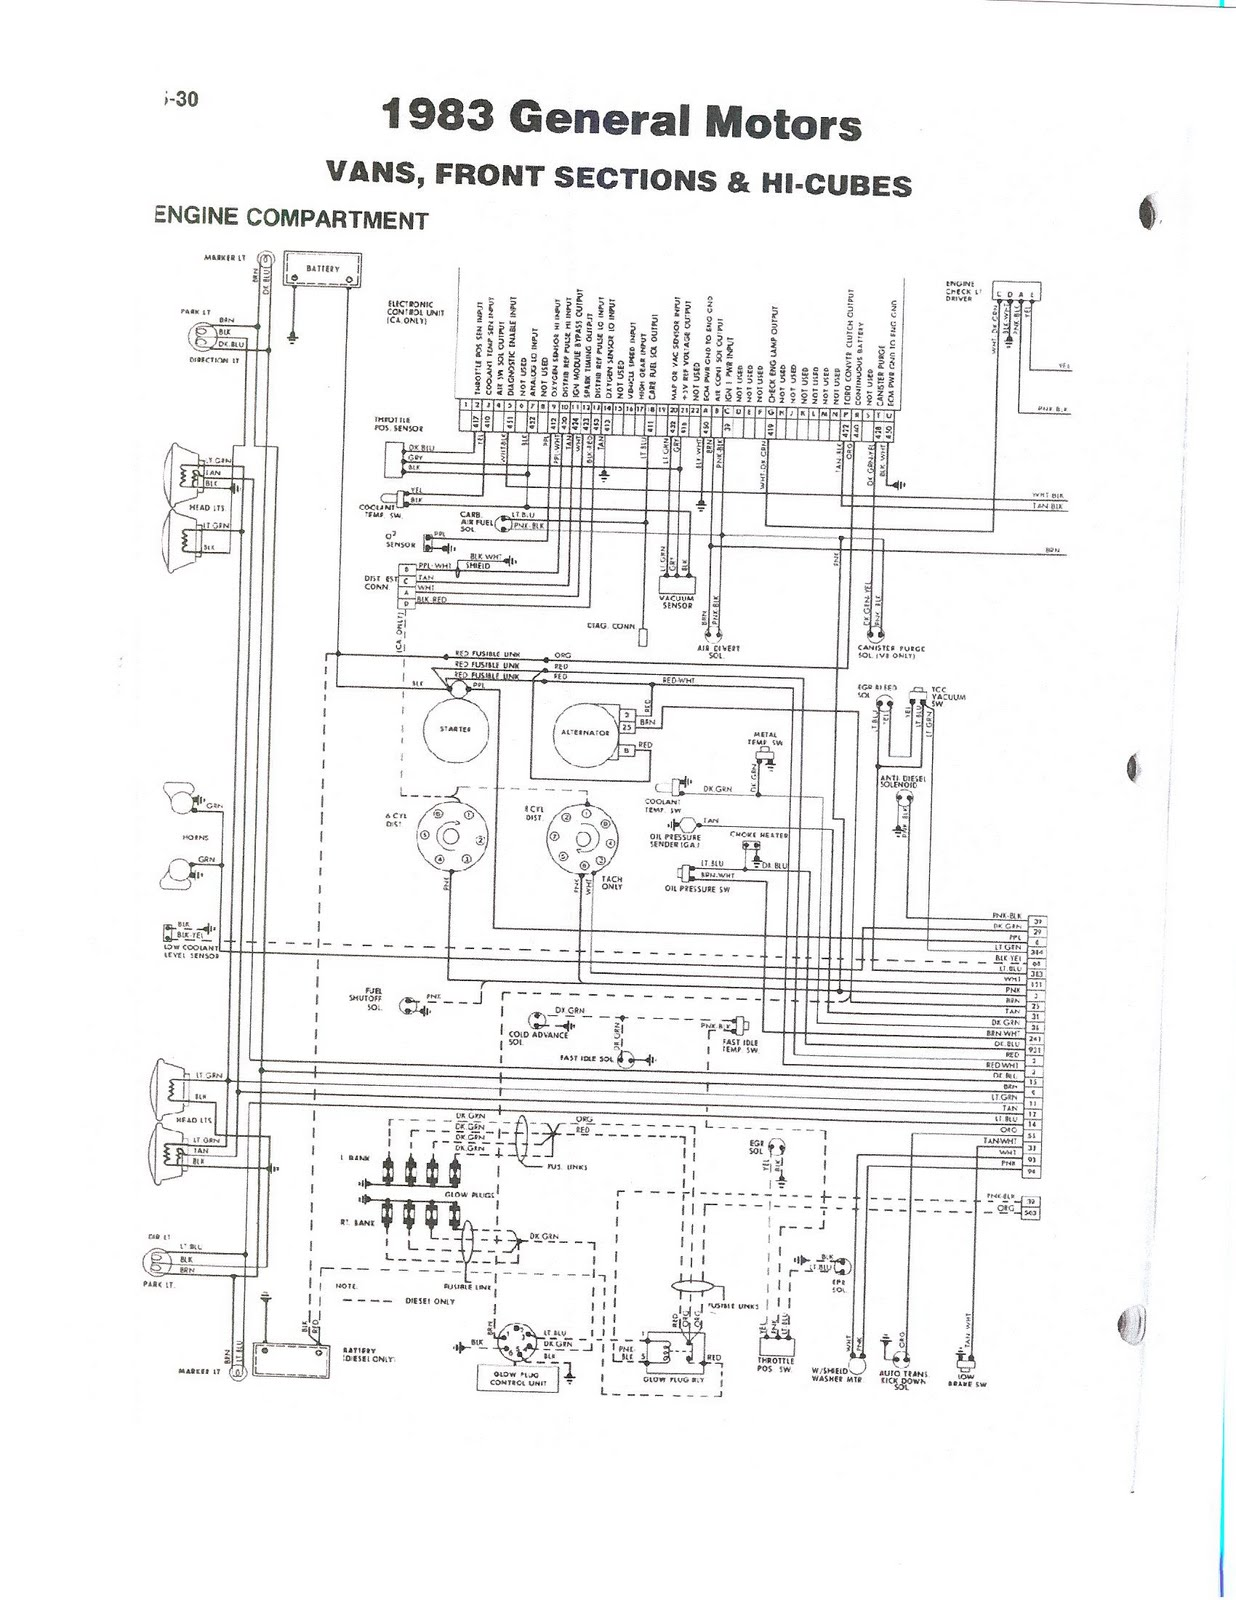 Fleetwood wiring diagram wiring diagram 1983 coachmen wiring diagram wiring diagrams schematics fleetwood motorhome electrical diagram fleetwood wiring diagram cheapraybanclubmaster